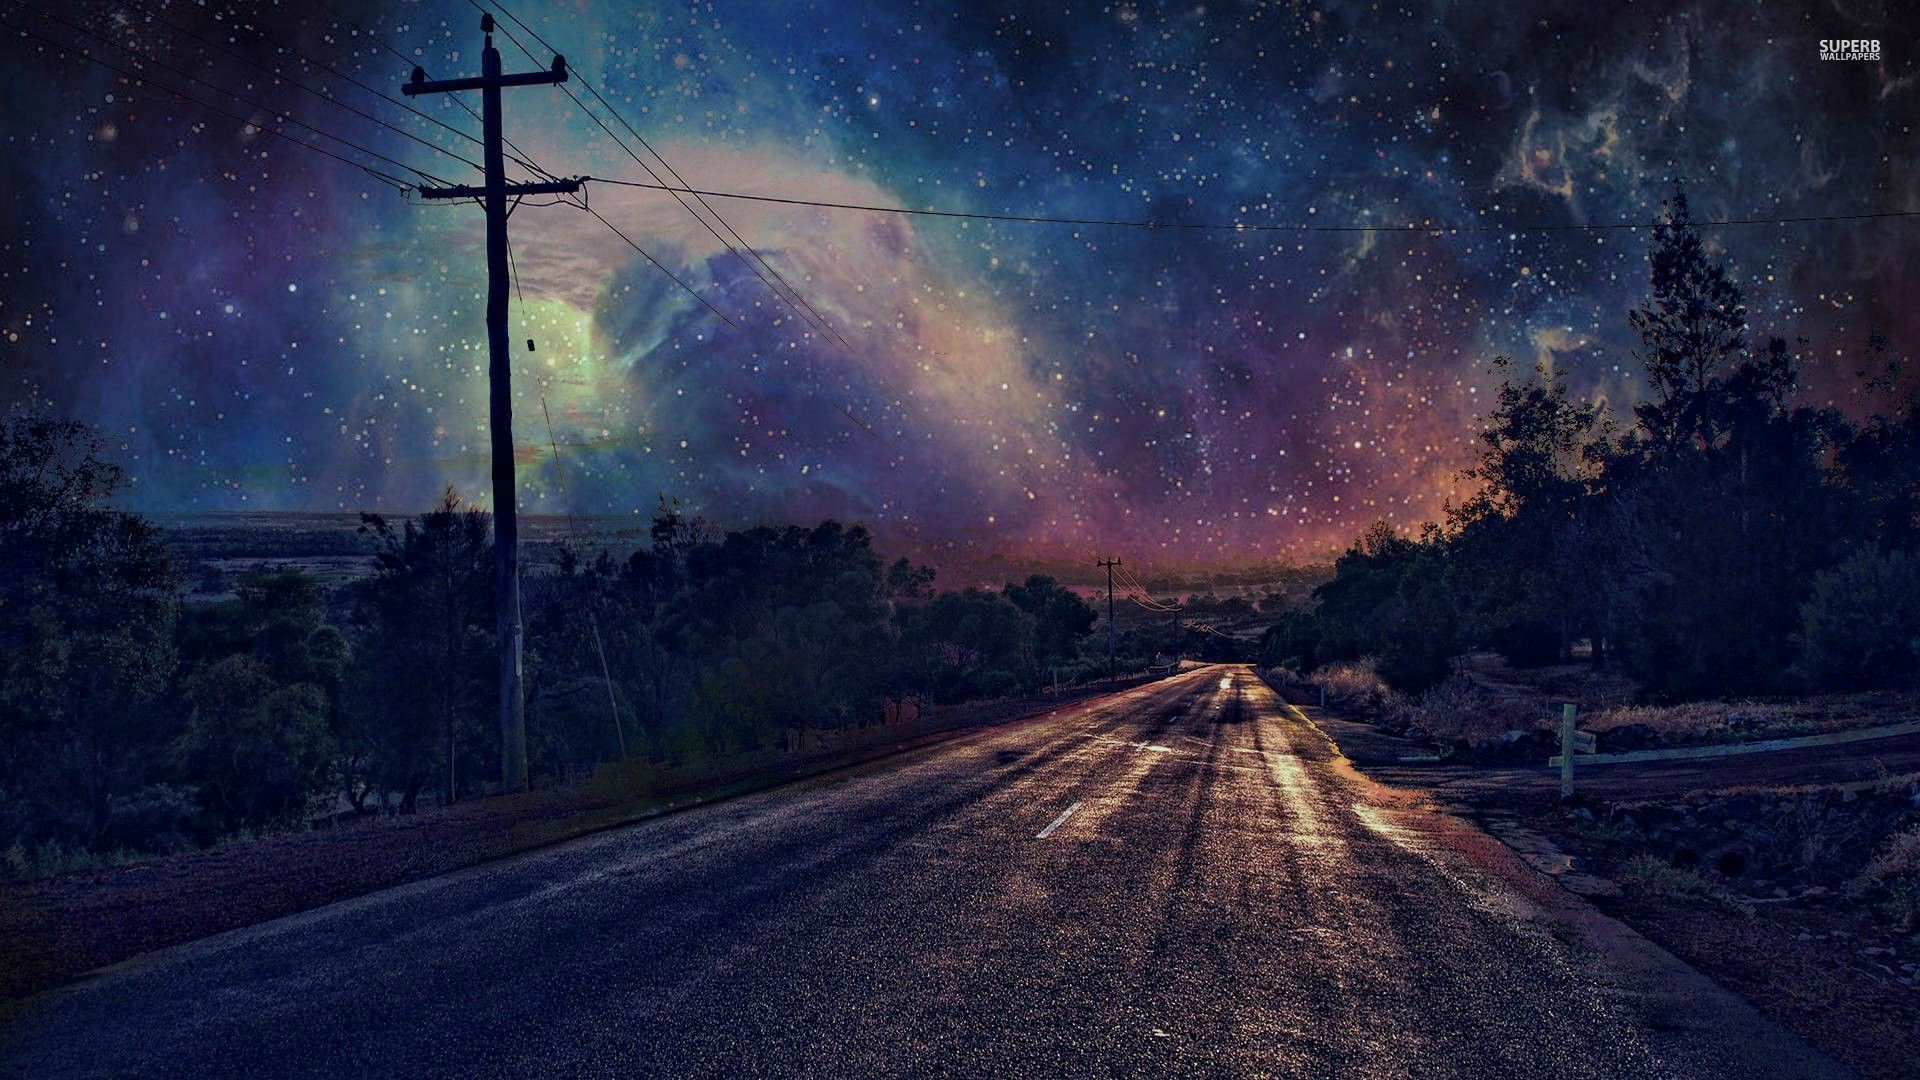 30 hd sky wallpapers backgrounds images design trends